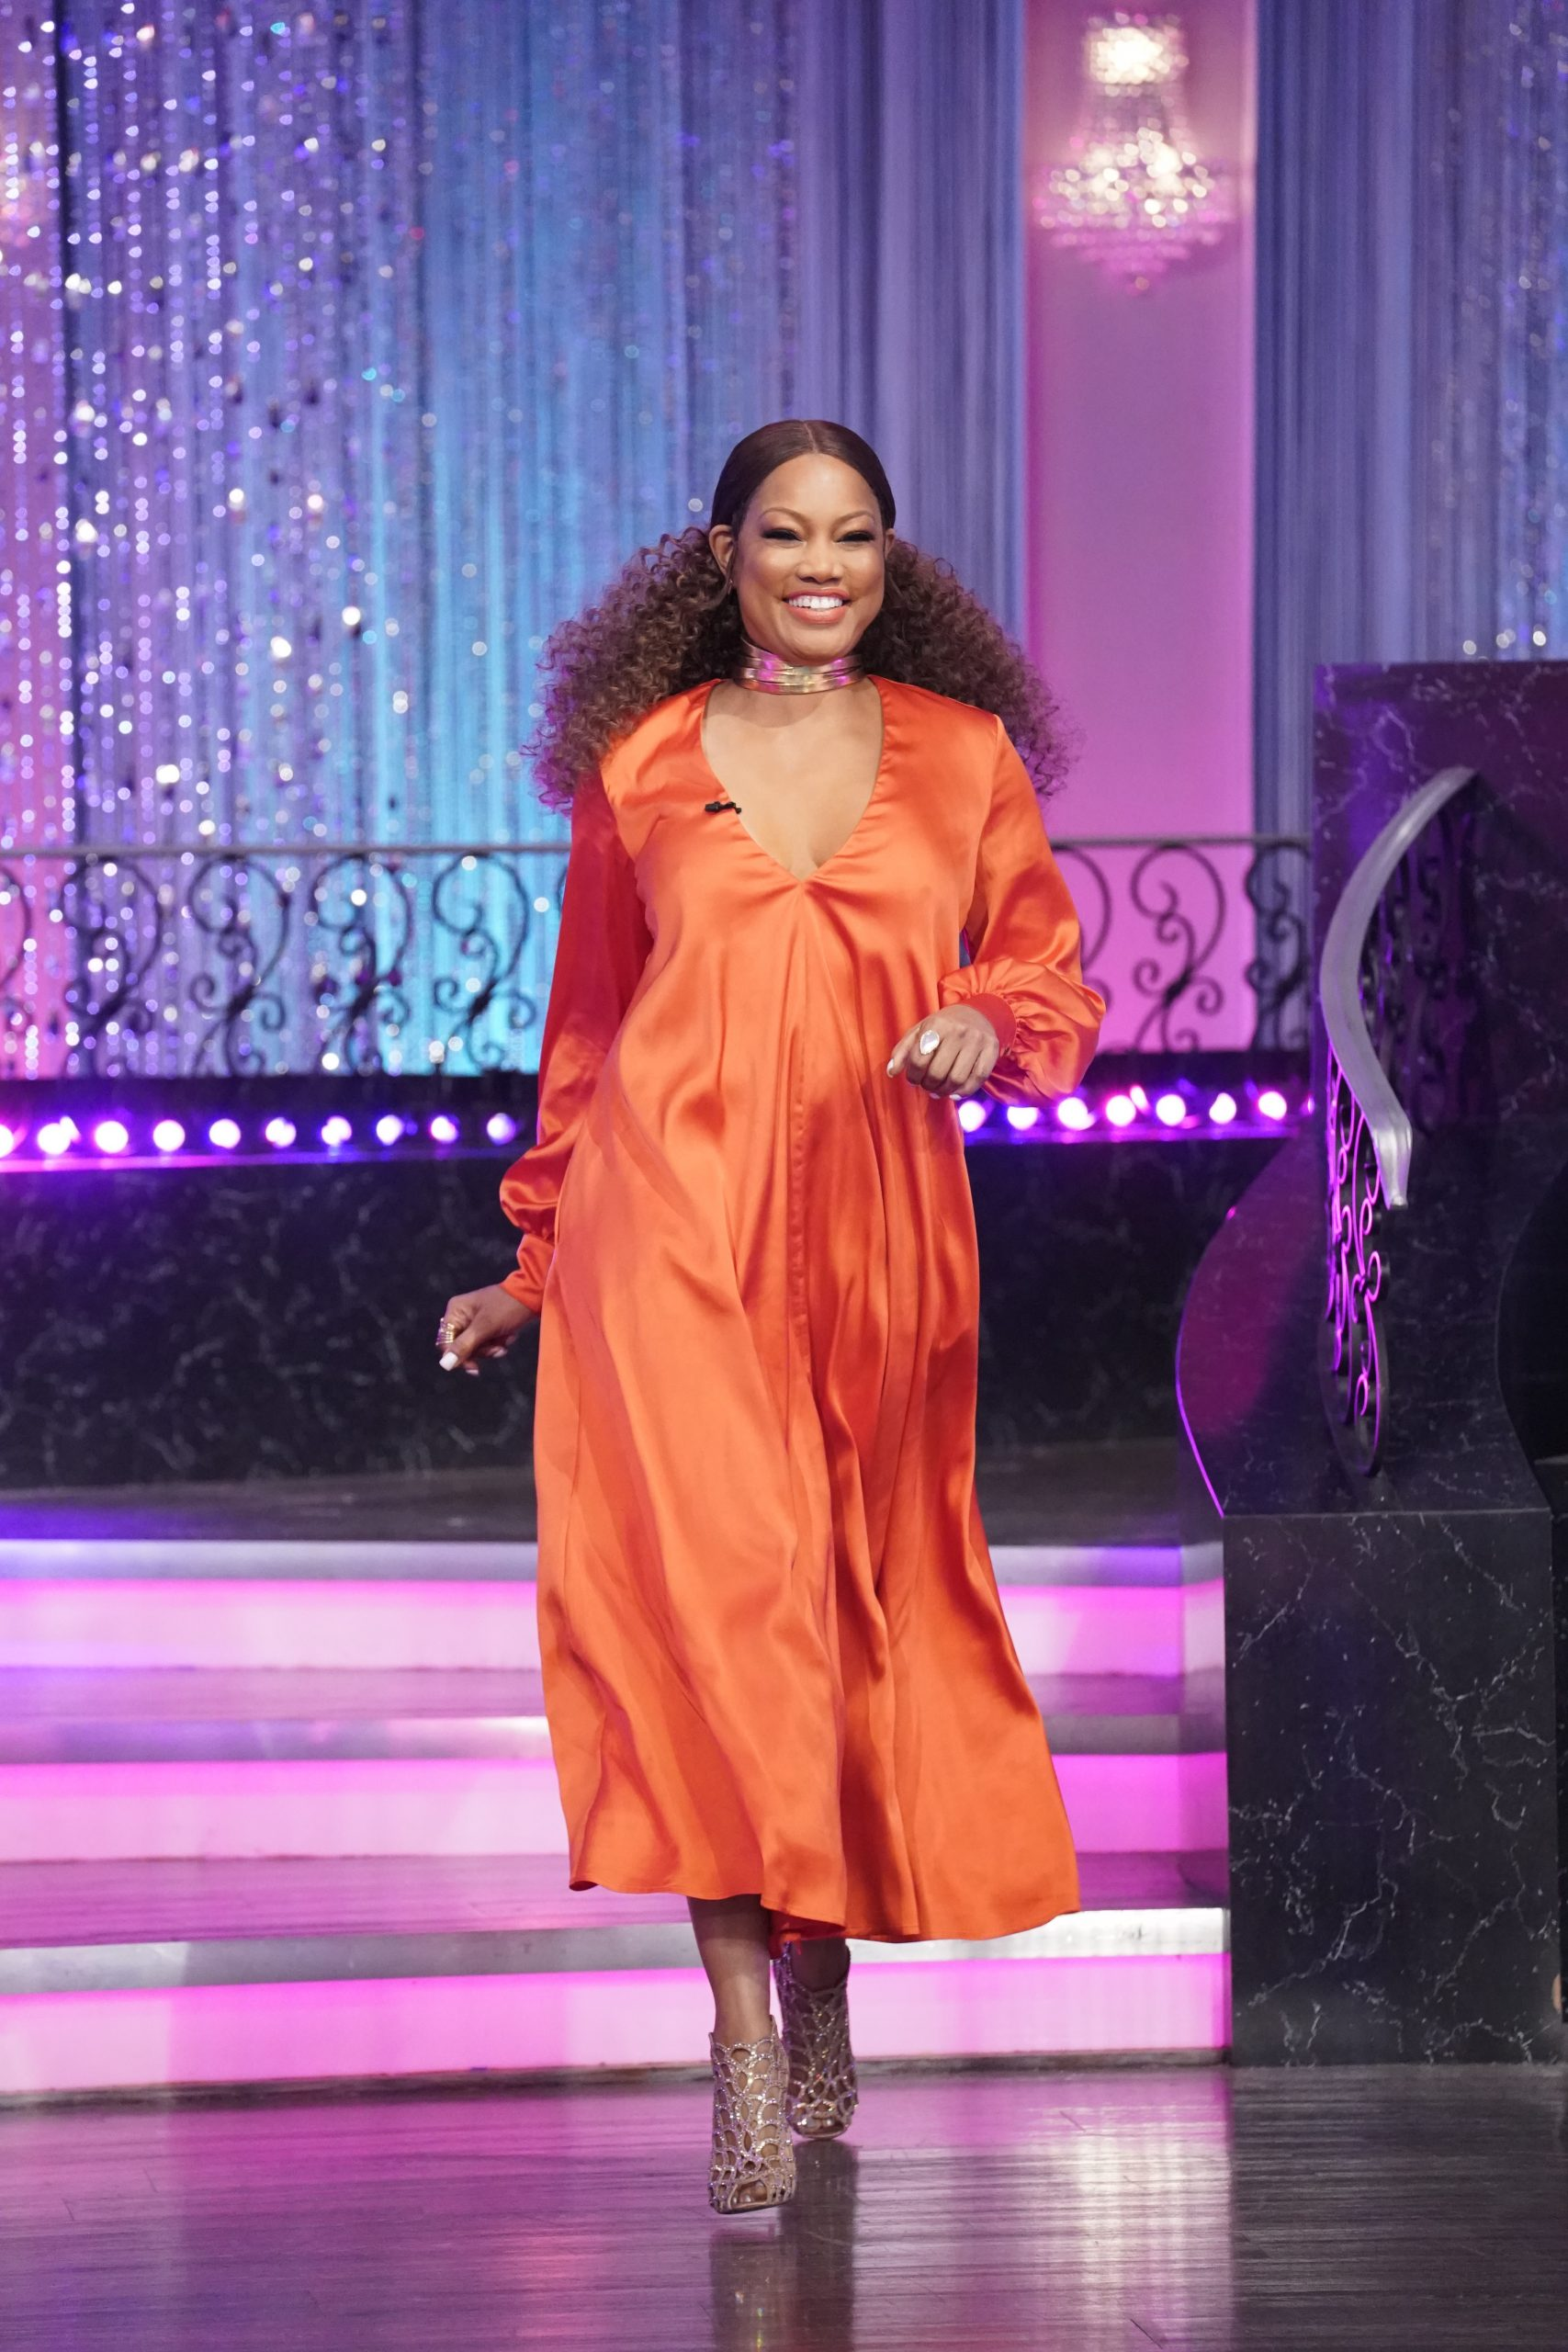 THE REAL: All New! Tamera Deals With Insecurities About Her Stretch Marks And Garcelle Beauvais From RHOBH Stops By!